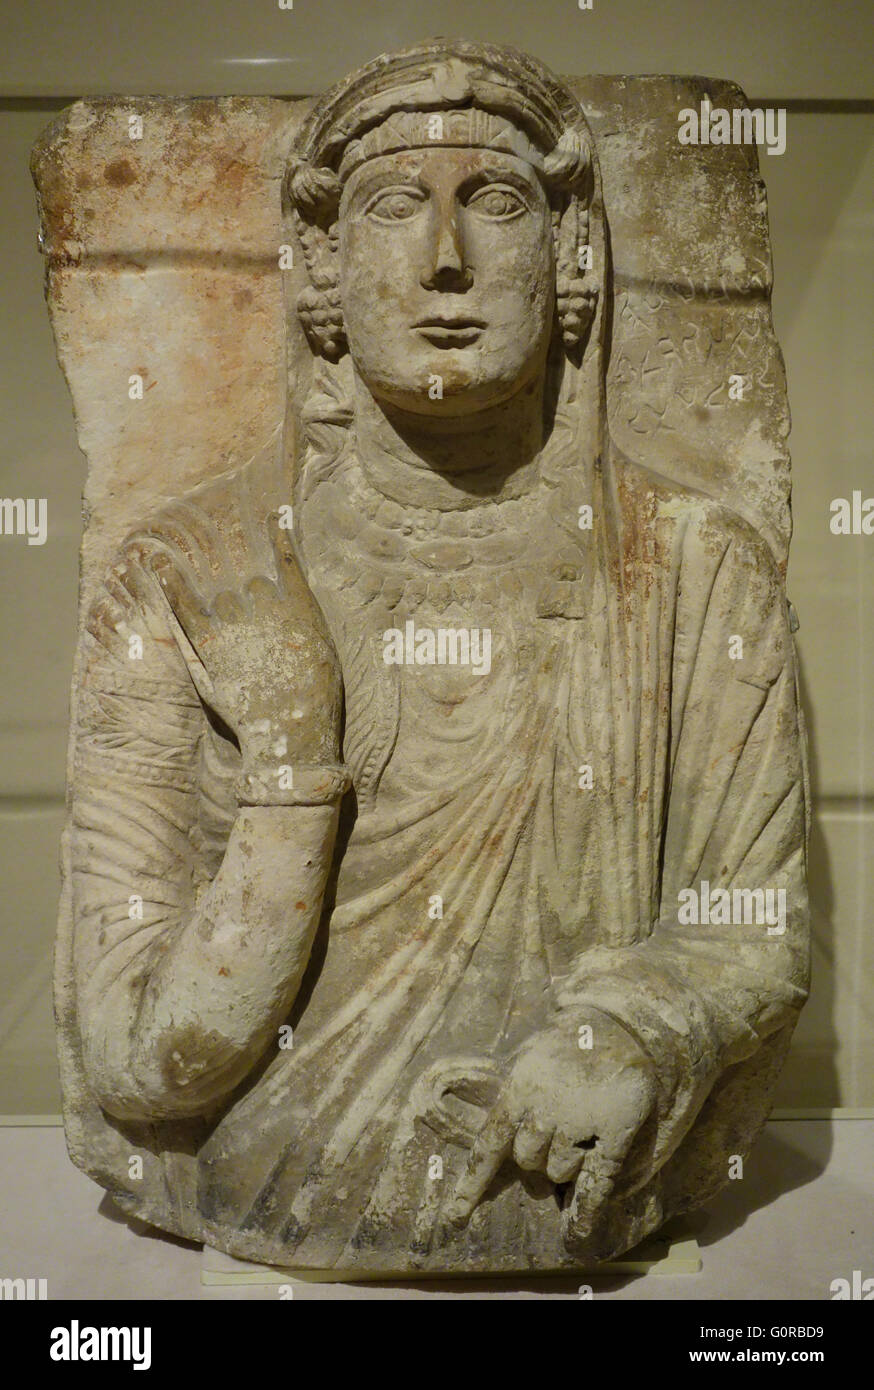 3C funerary bust from ancient city of Palmyra in Syria Middle East displayed in LACMA Los Angeles - Stock Image